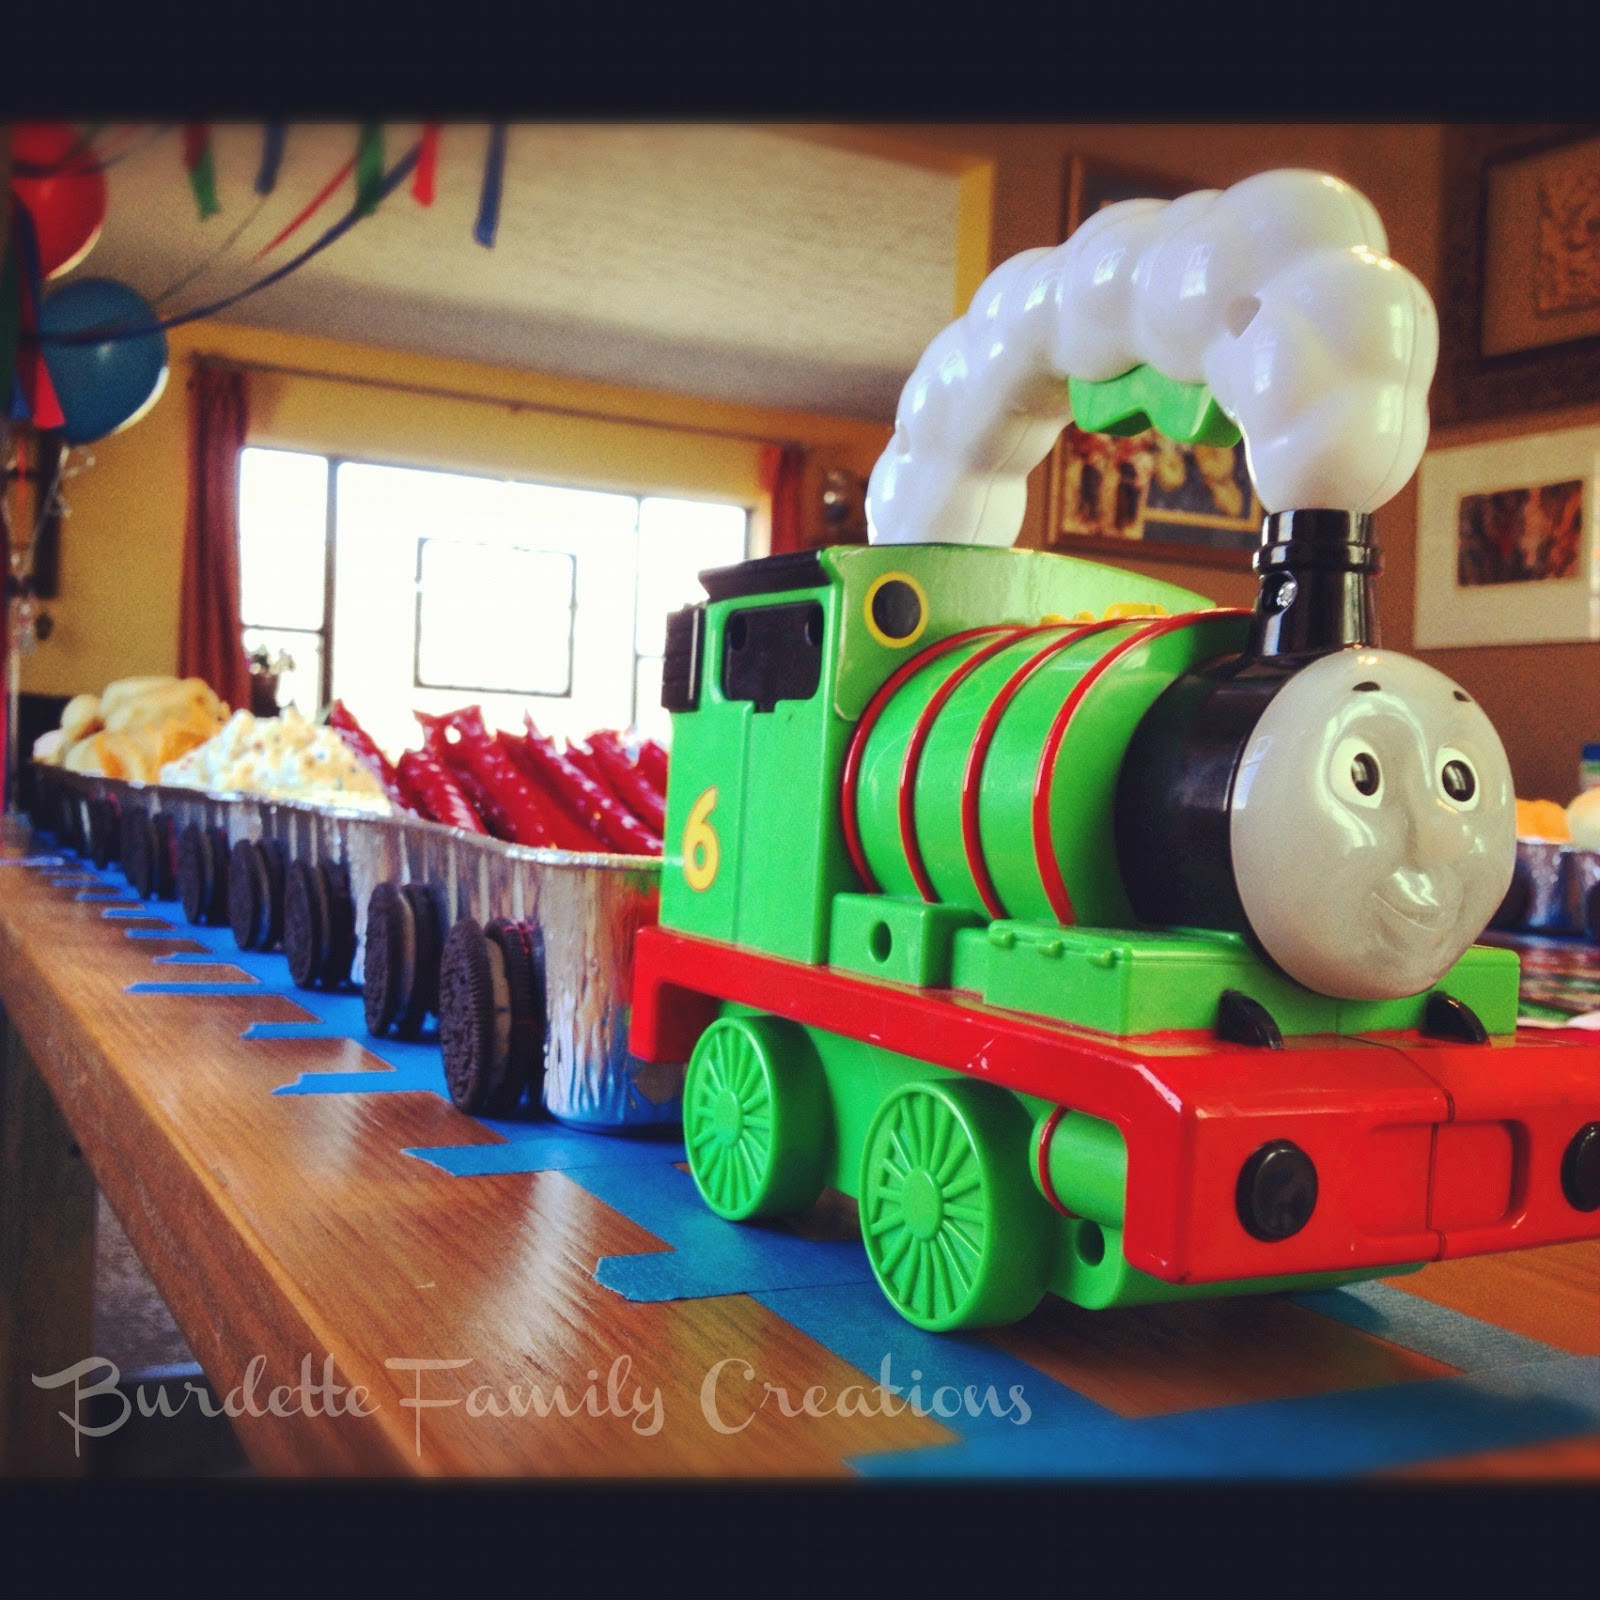 Best ideas about Thomas The Train Birthday Decorations . Save or Pin Burdette Family Creations Thomas the Train Birthday Party Now.